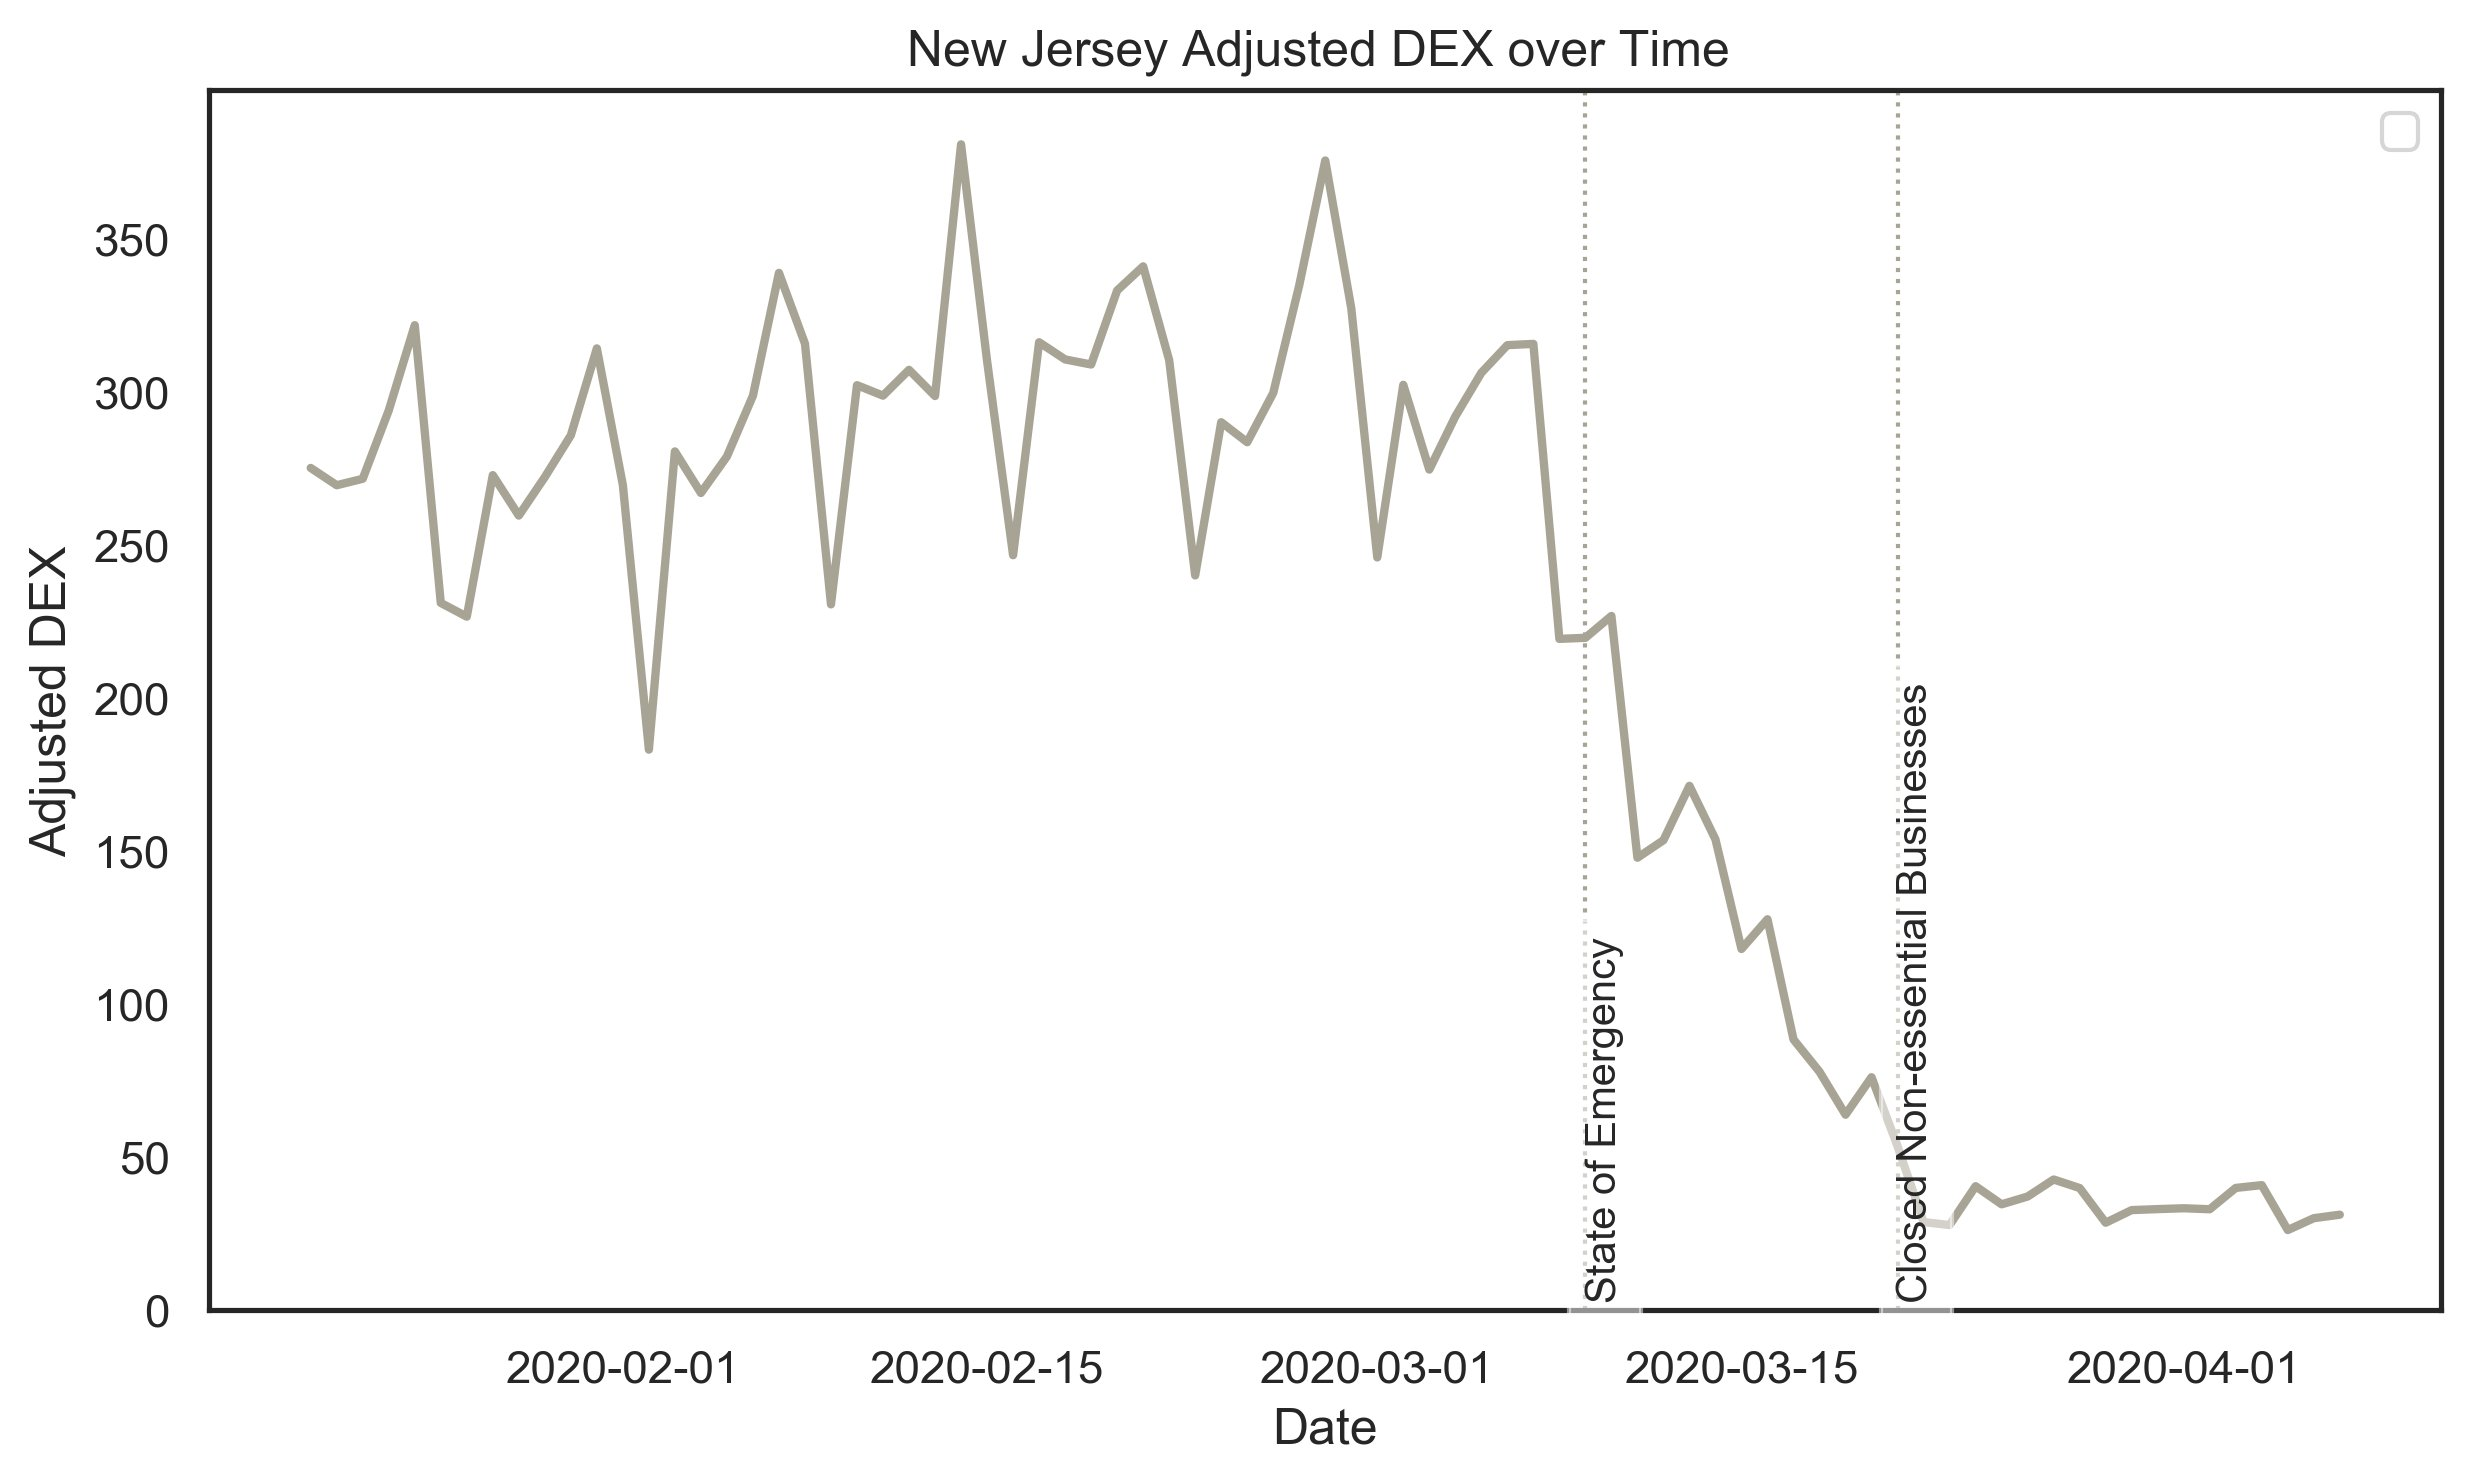 CHART: New Jersey Adjusted DEX over Time